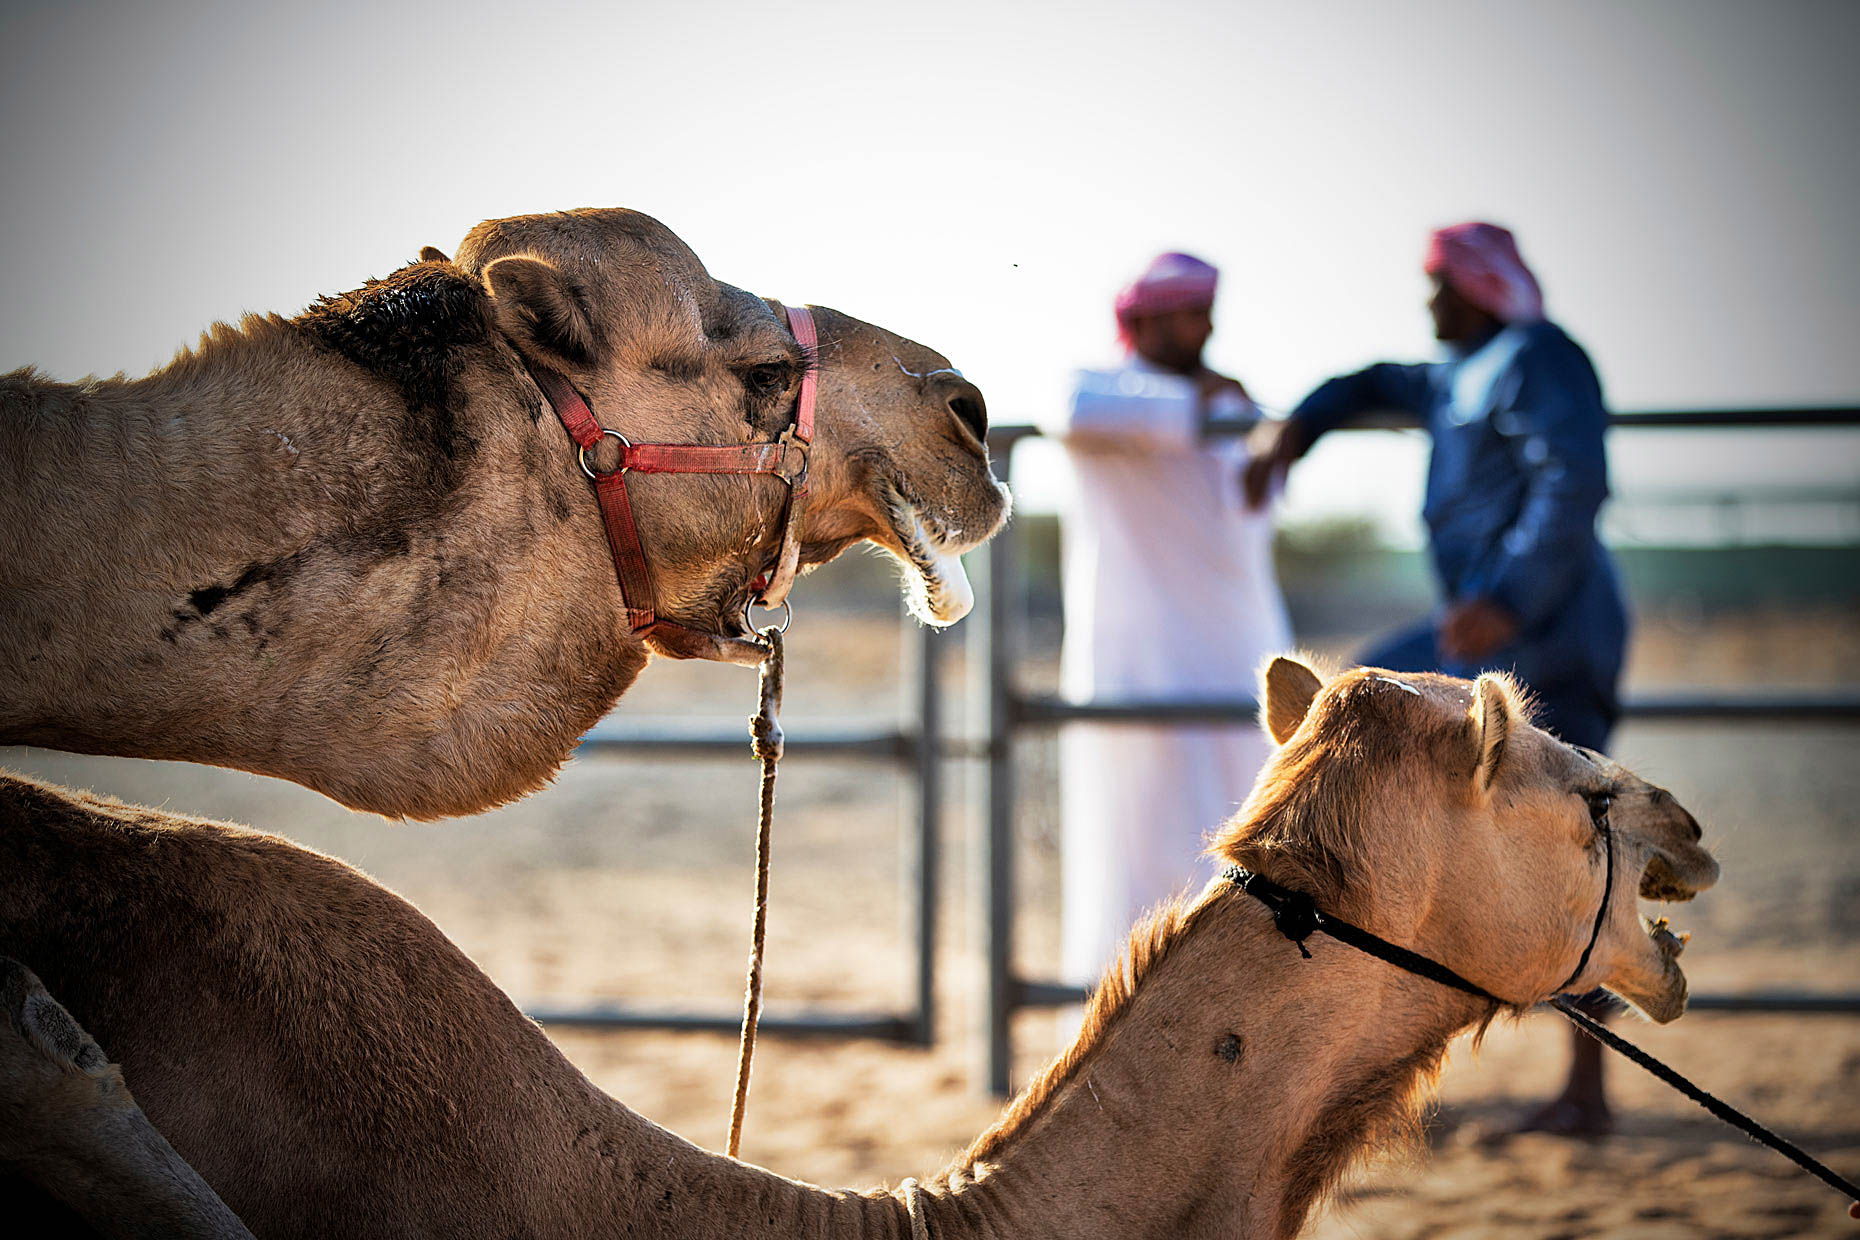 Wouter-Kingma-Web-Camel-Library-26